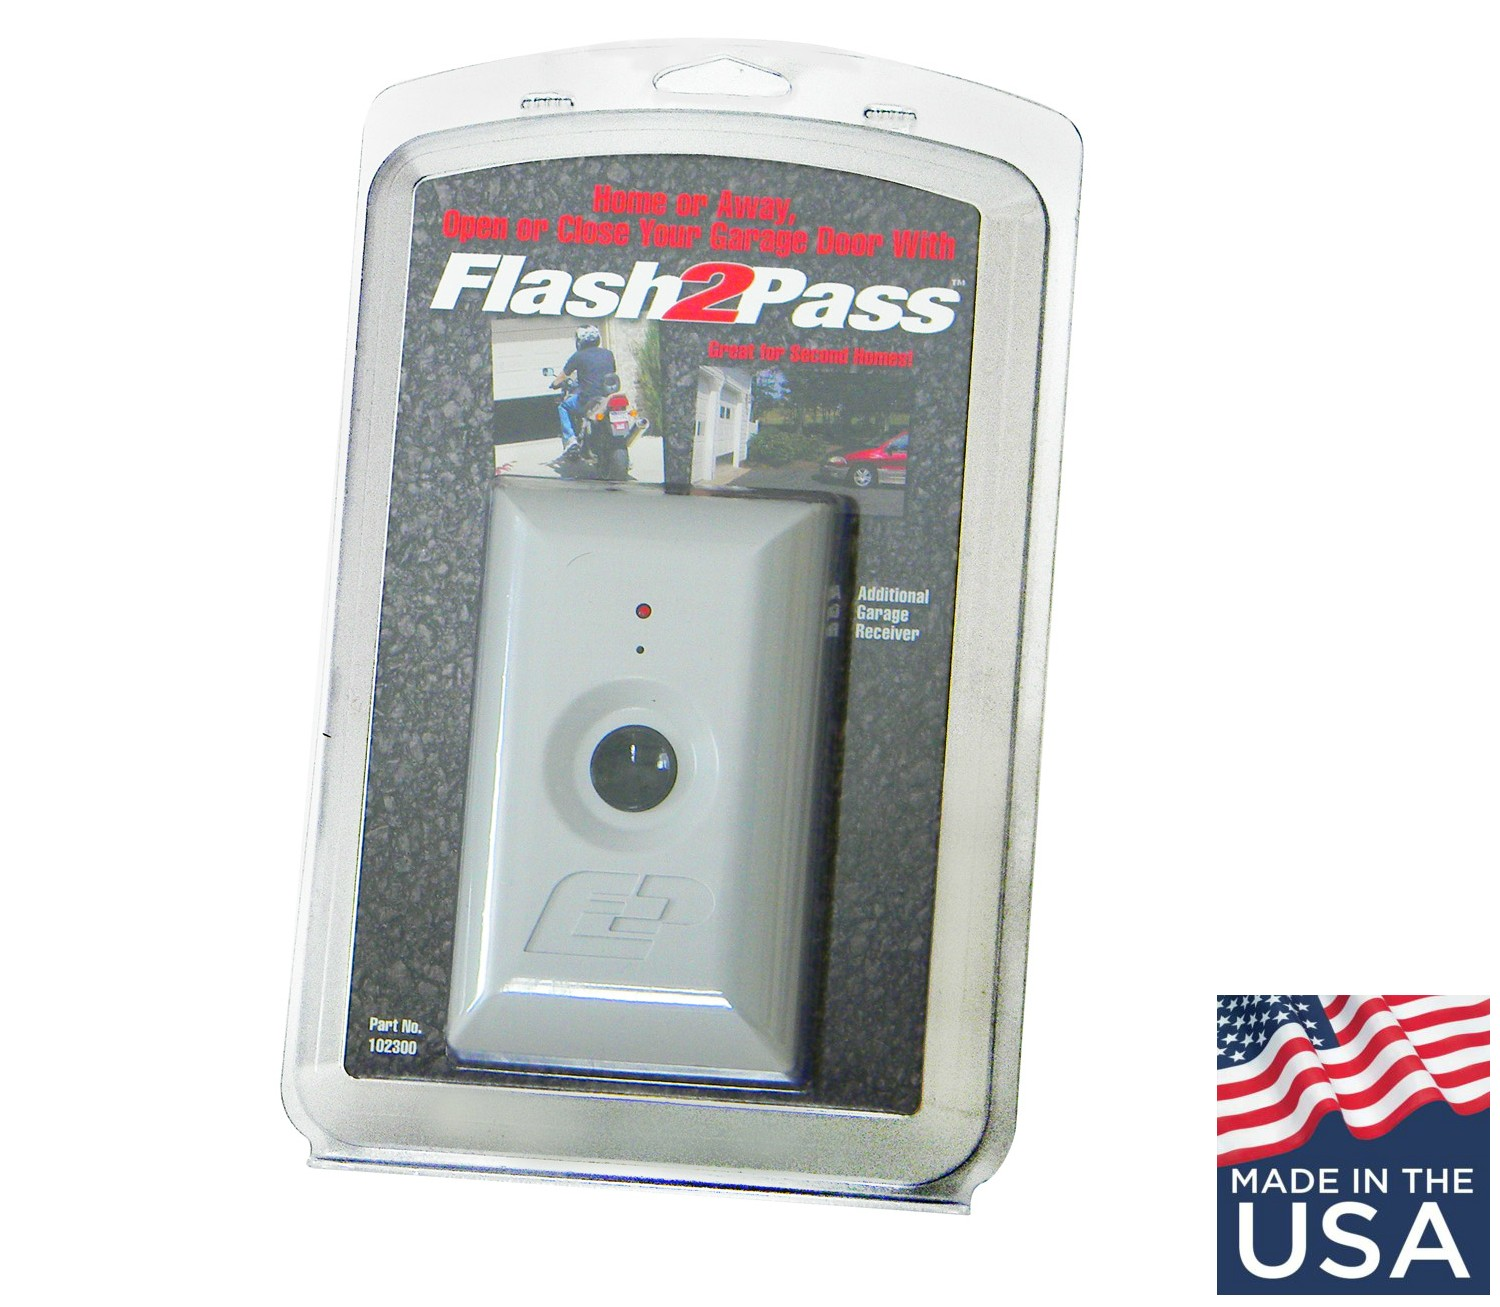 Update flash2pass headlight activated garage door opener is back if youre too young to remember seeing the old flash2pass in action well explain to you the simple and convenient philosophy that stands behind it rubansaba